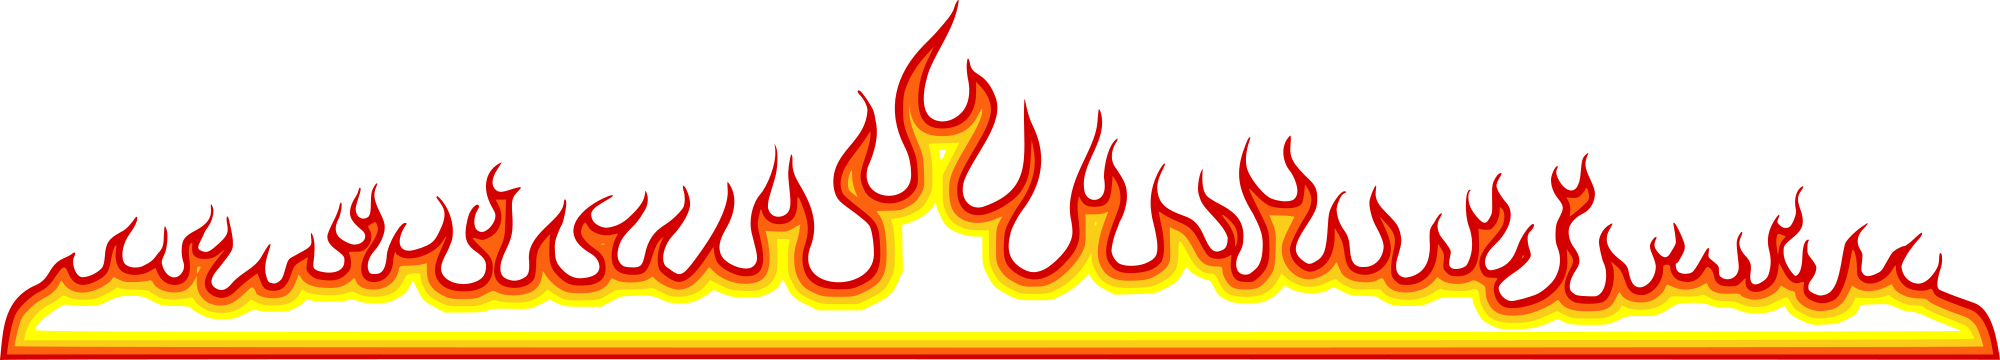 cartoon-fire-border-line-1.png